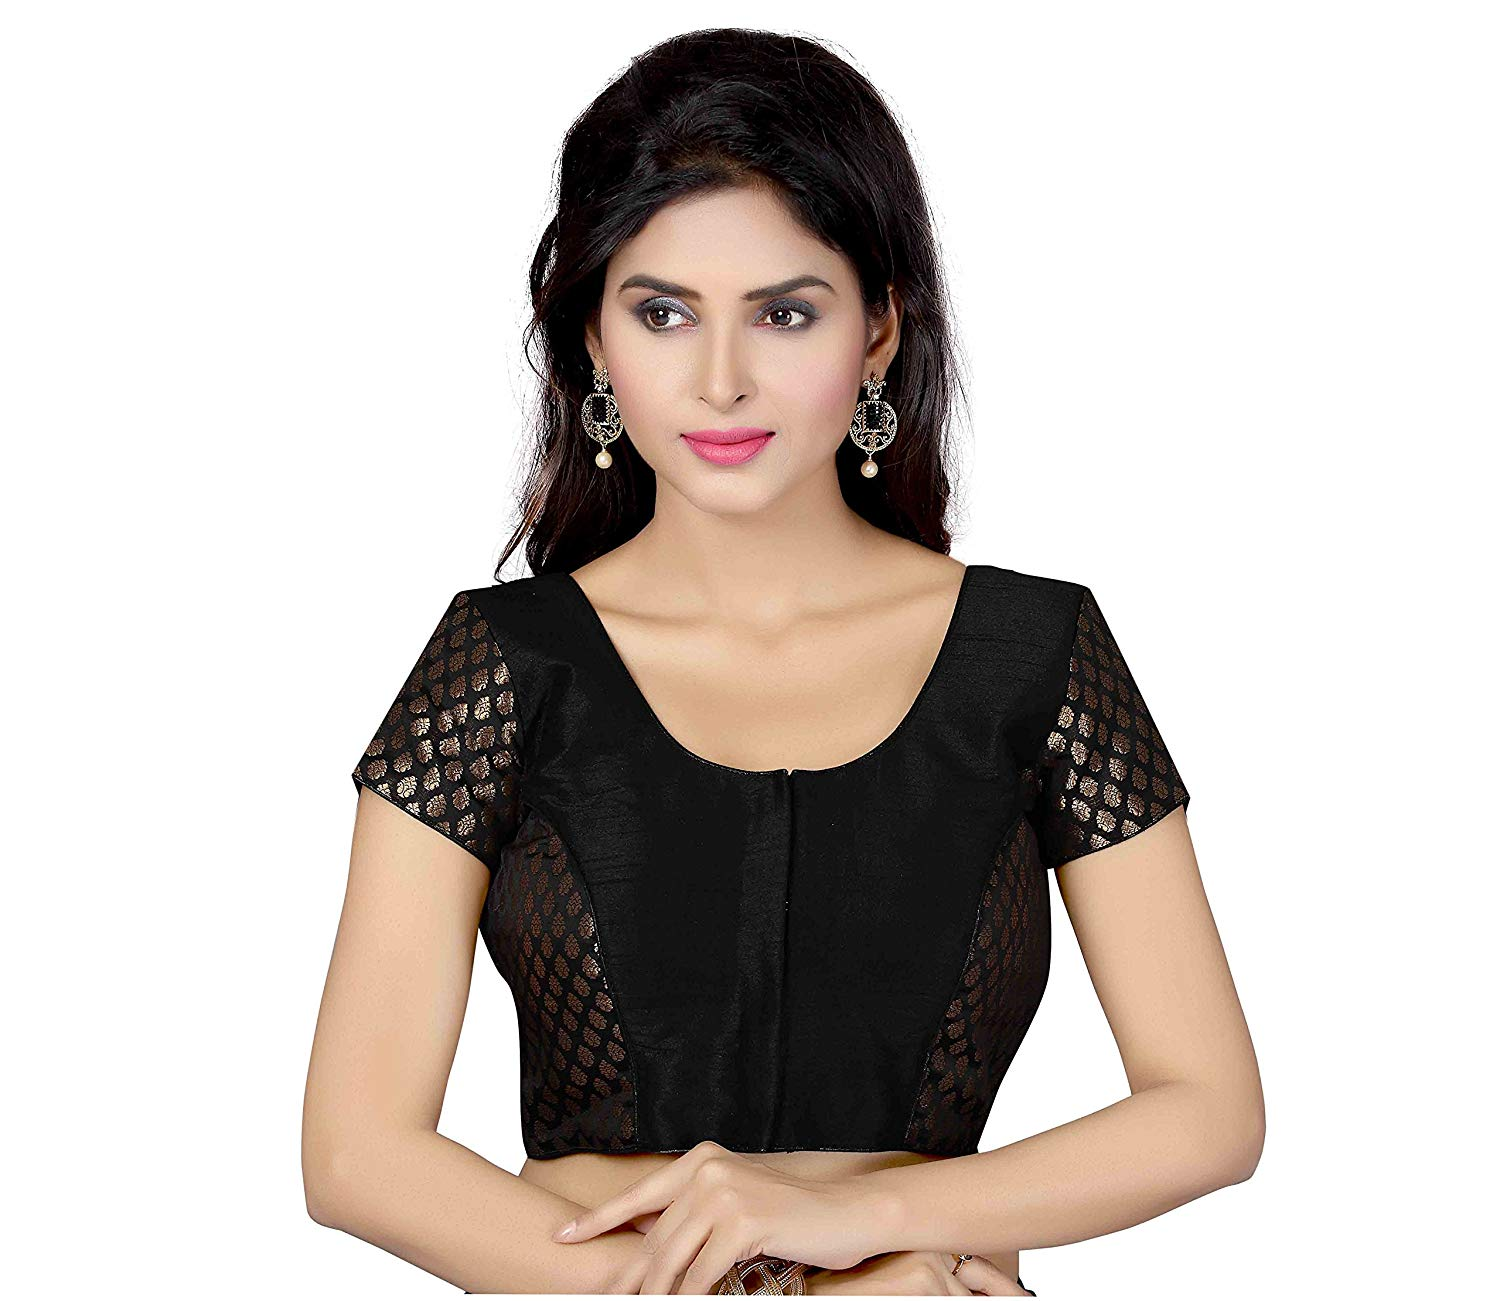 cf0db451d8bd9a Get Quotations · TrendyFashionMall Readymade Bollywood Style Silk Saree  Blouse Collection!